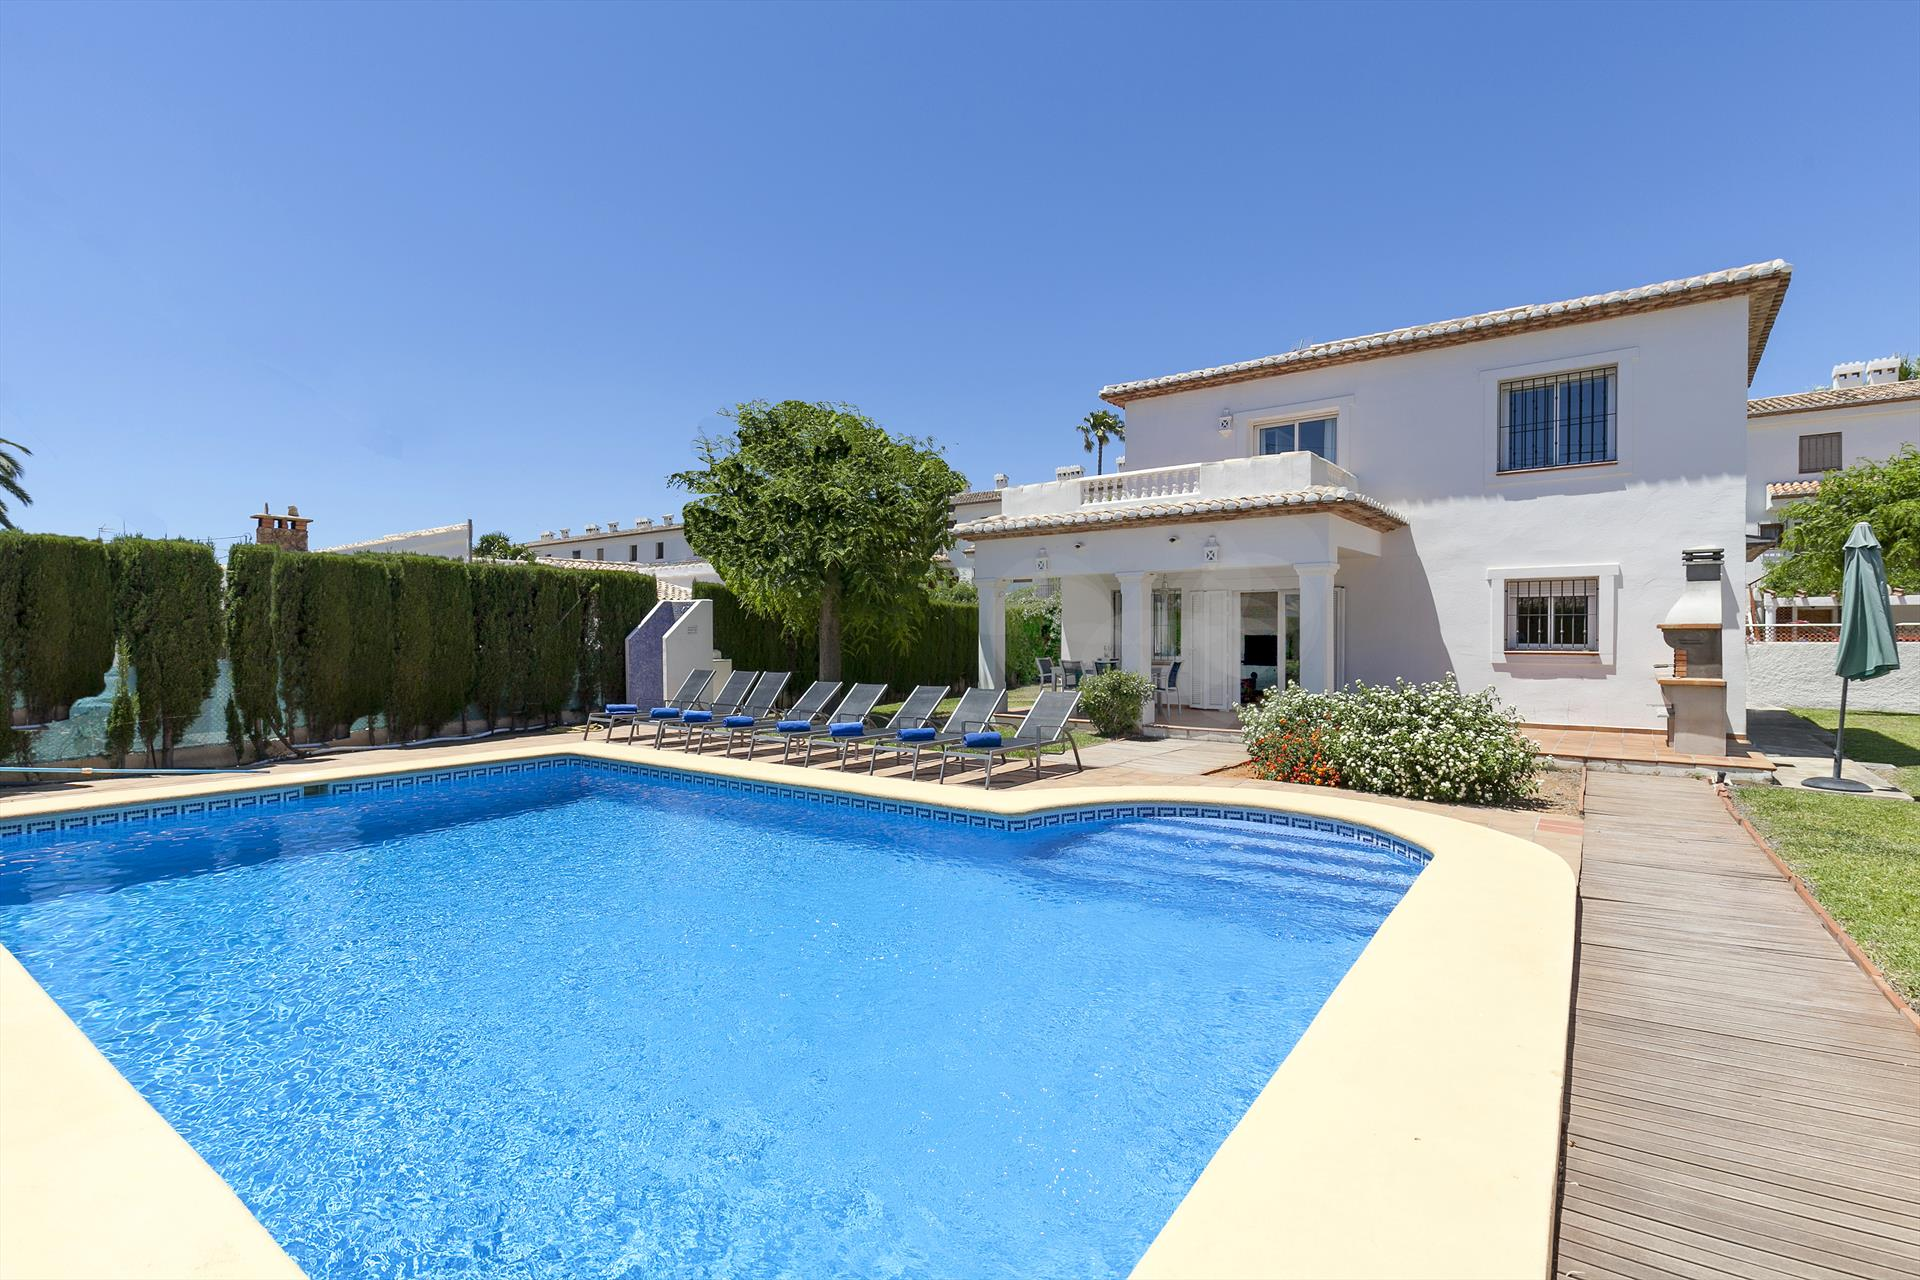 Villa Vicenta, Holiday Villa with private pool in Denia, on the Costa Blanca, Spain for 8 persons. The villa is situated in a residential.....